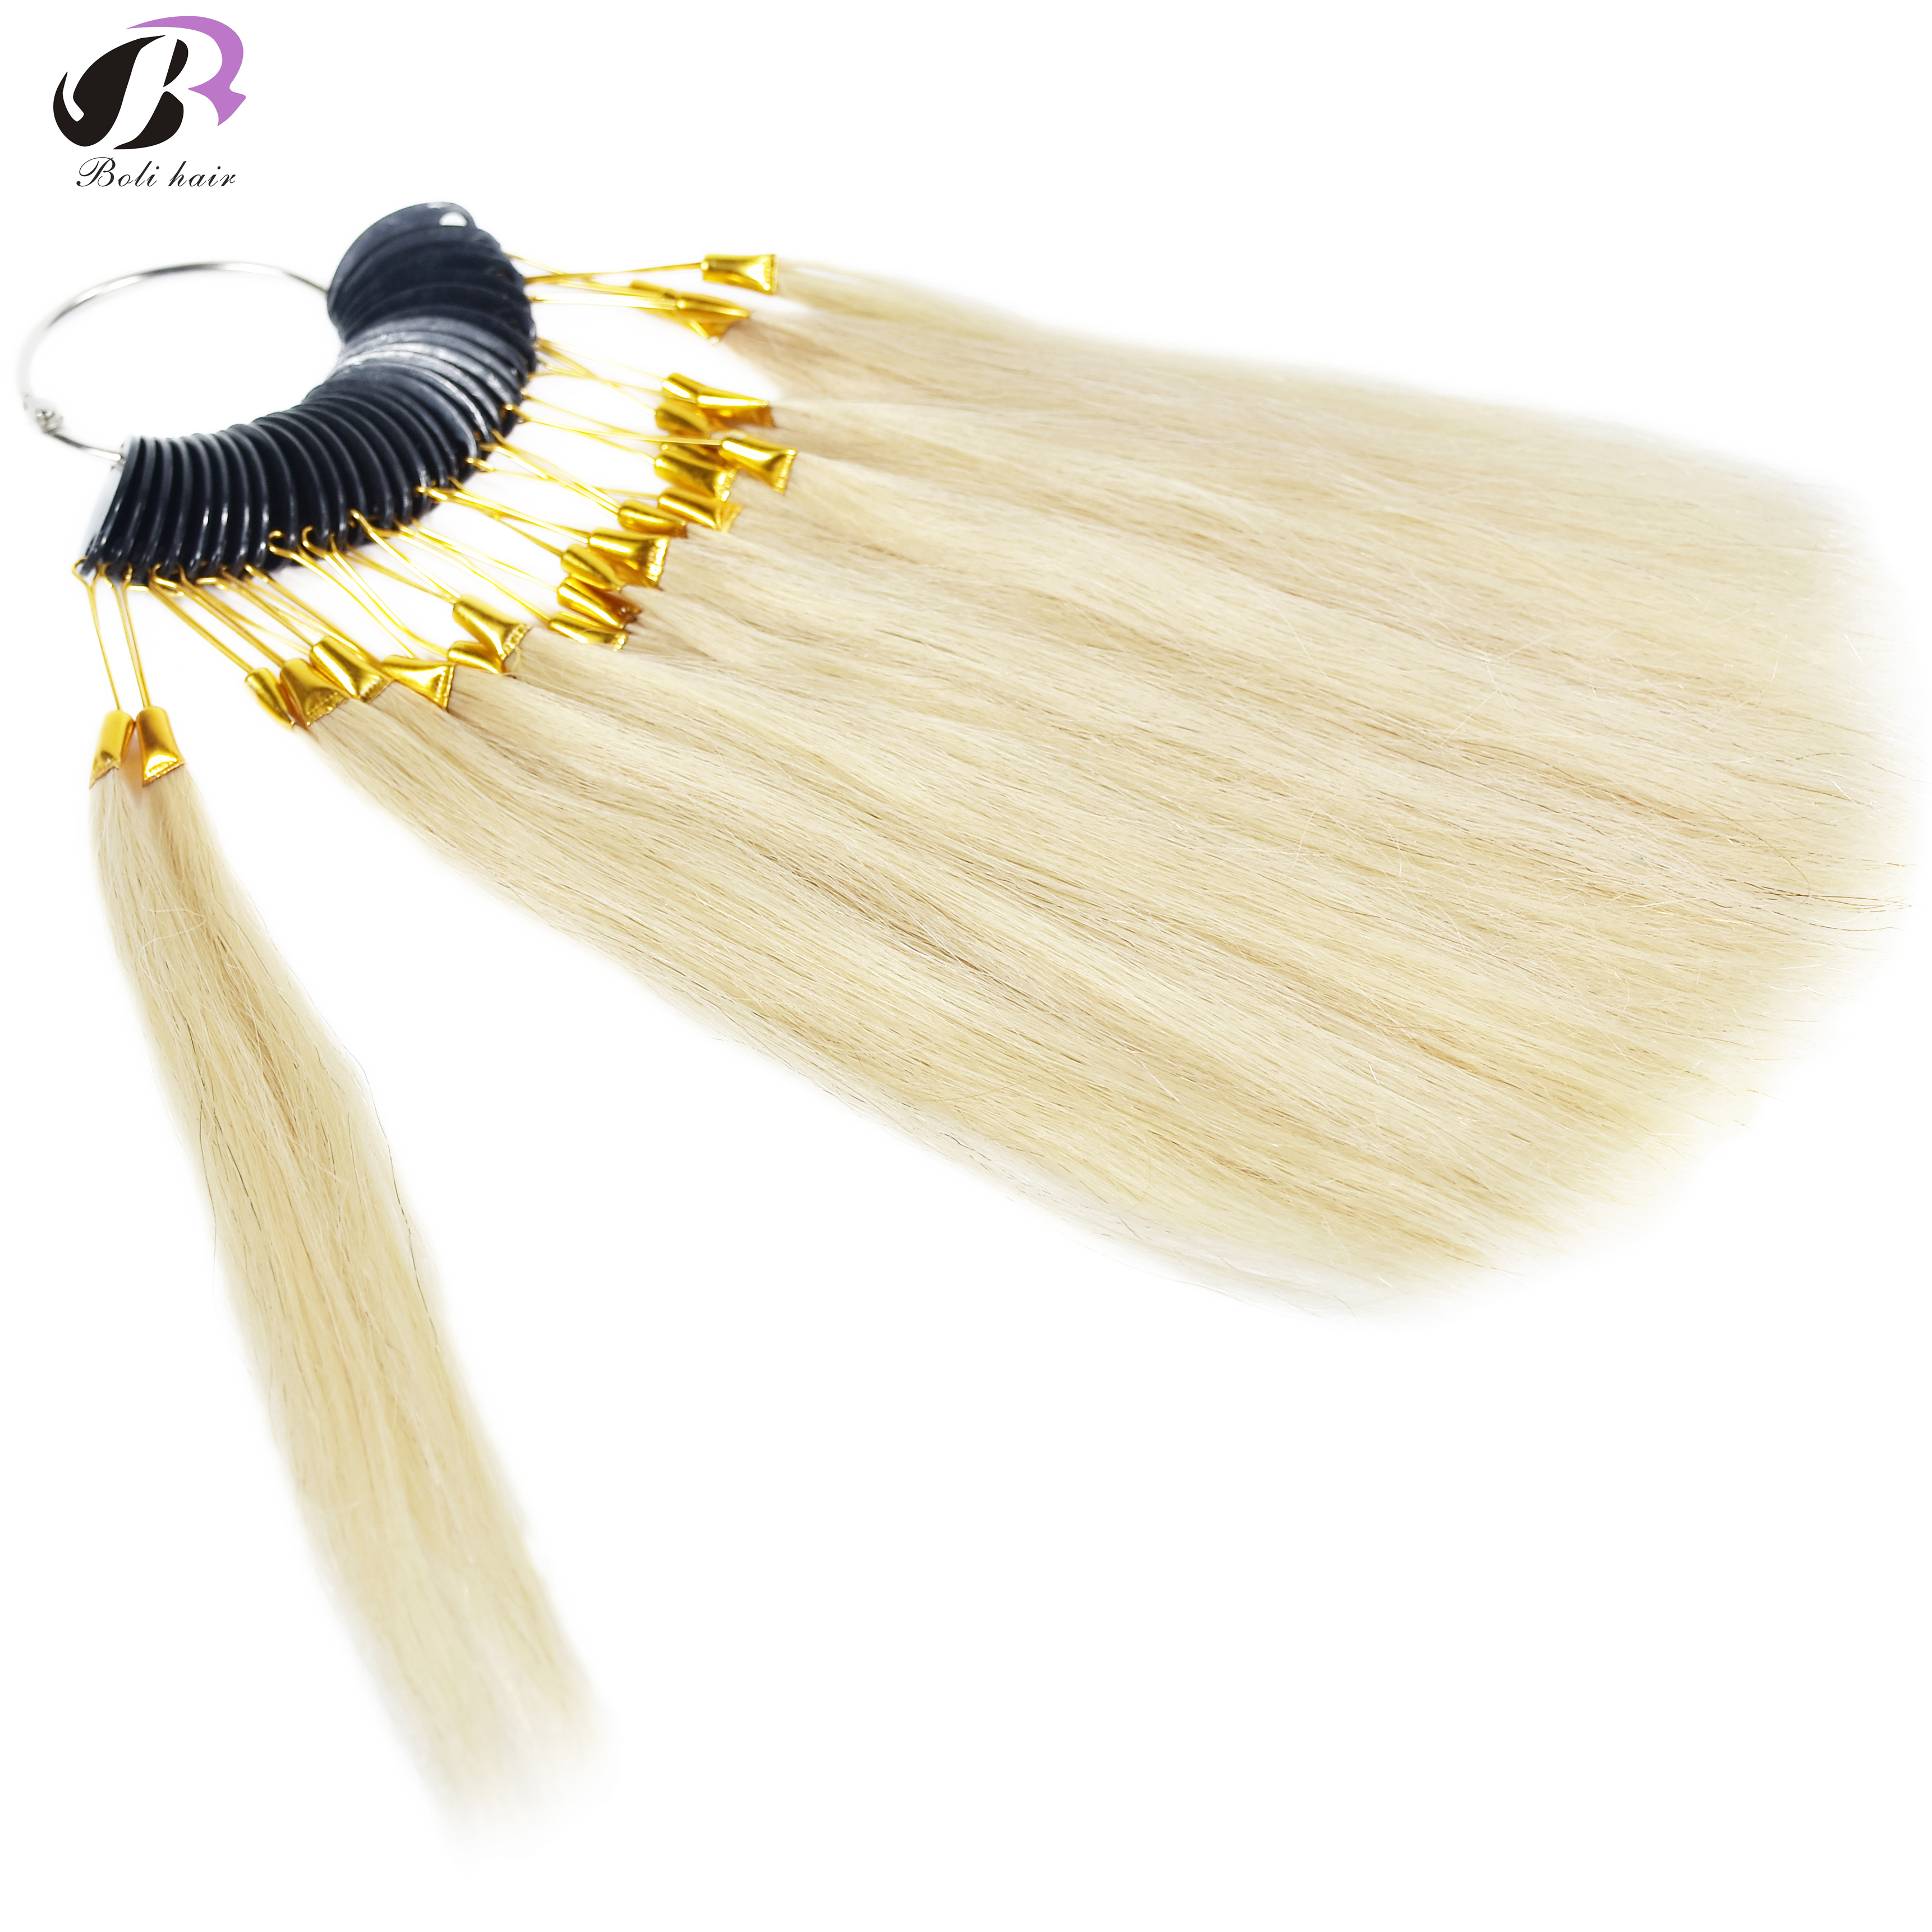 7cm 30Pcs/Set 100% Human Hair Color Rings For Human Hair Extensions And Salon Hair Dyeing Sample Can Be Dye Any Color